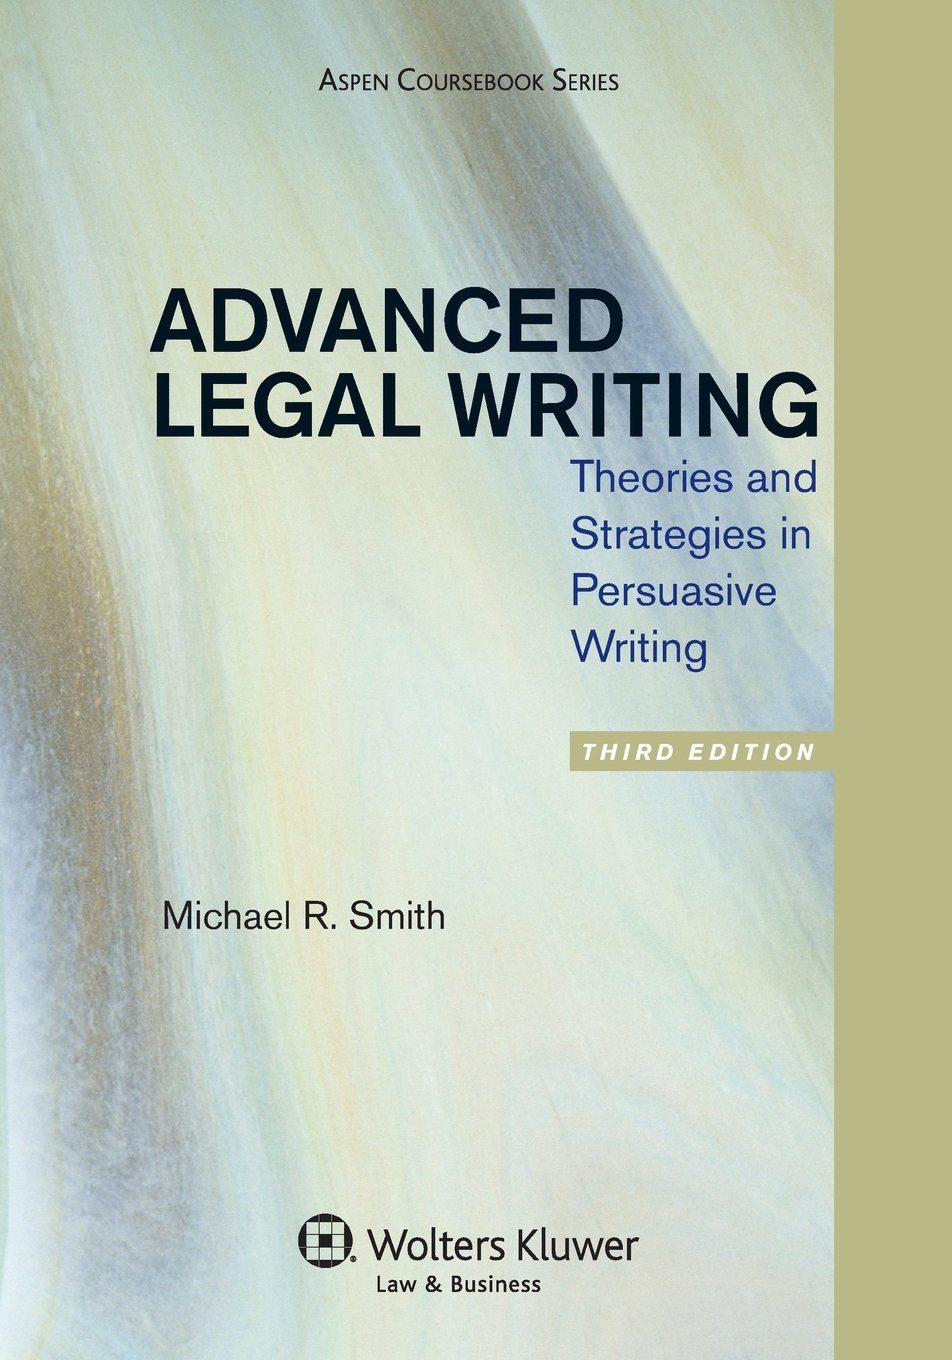 Buy Advanced Legal Writing: Theories and Strategies in Persuasive Writing  (Aspen Coursebook Series) Book Online at Low Prices in India | Advanced  Legal ...